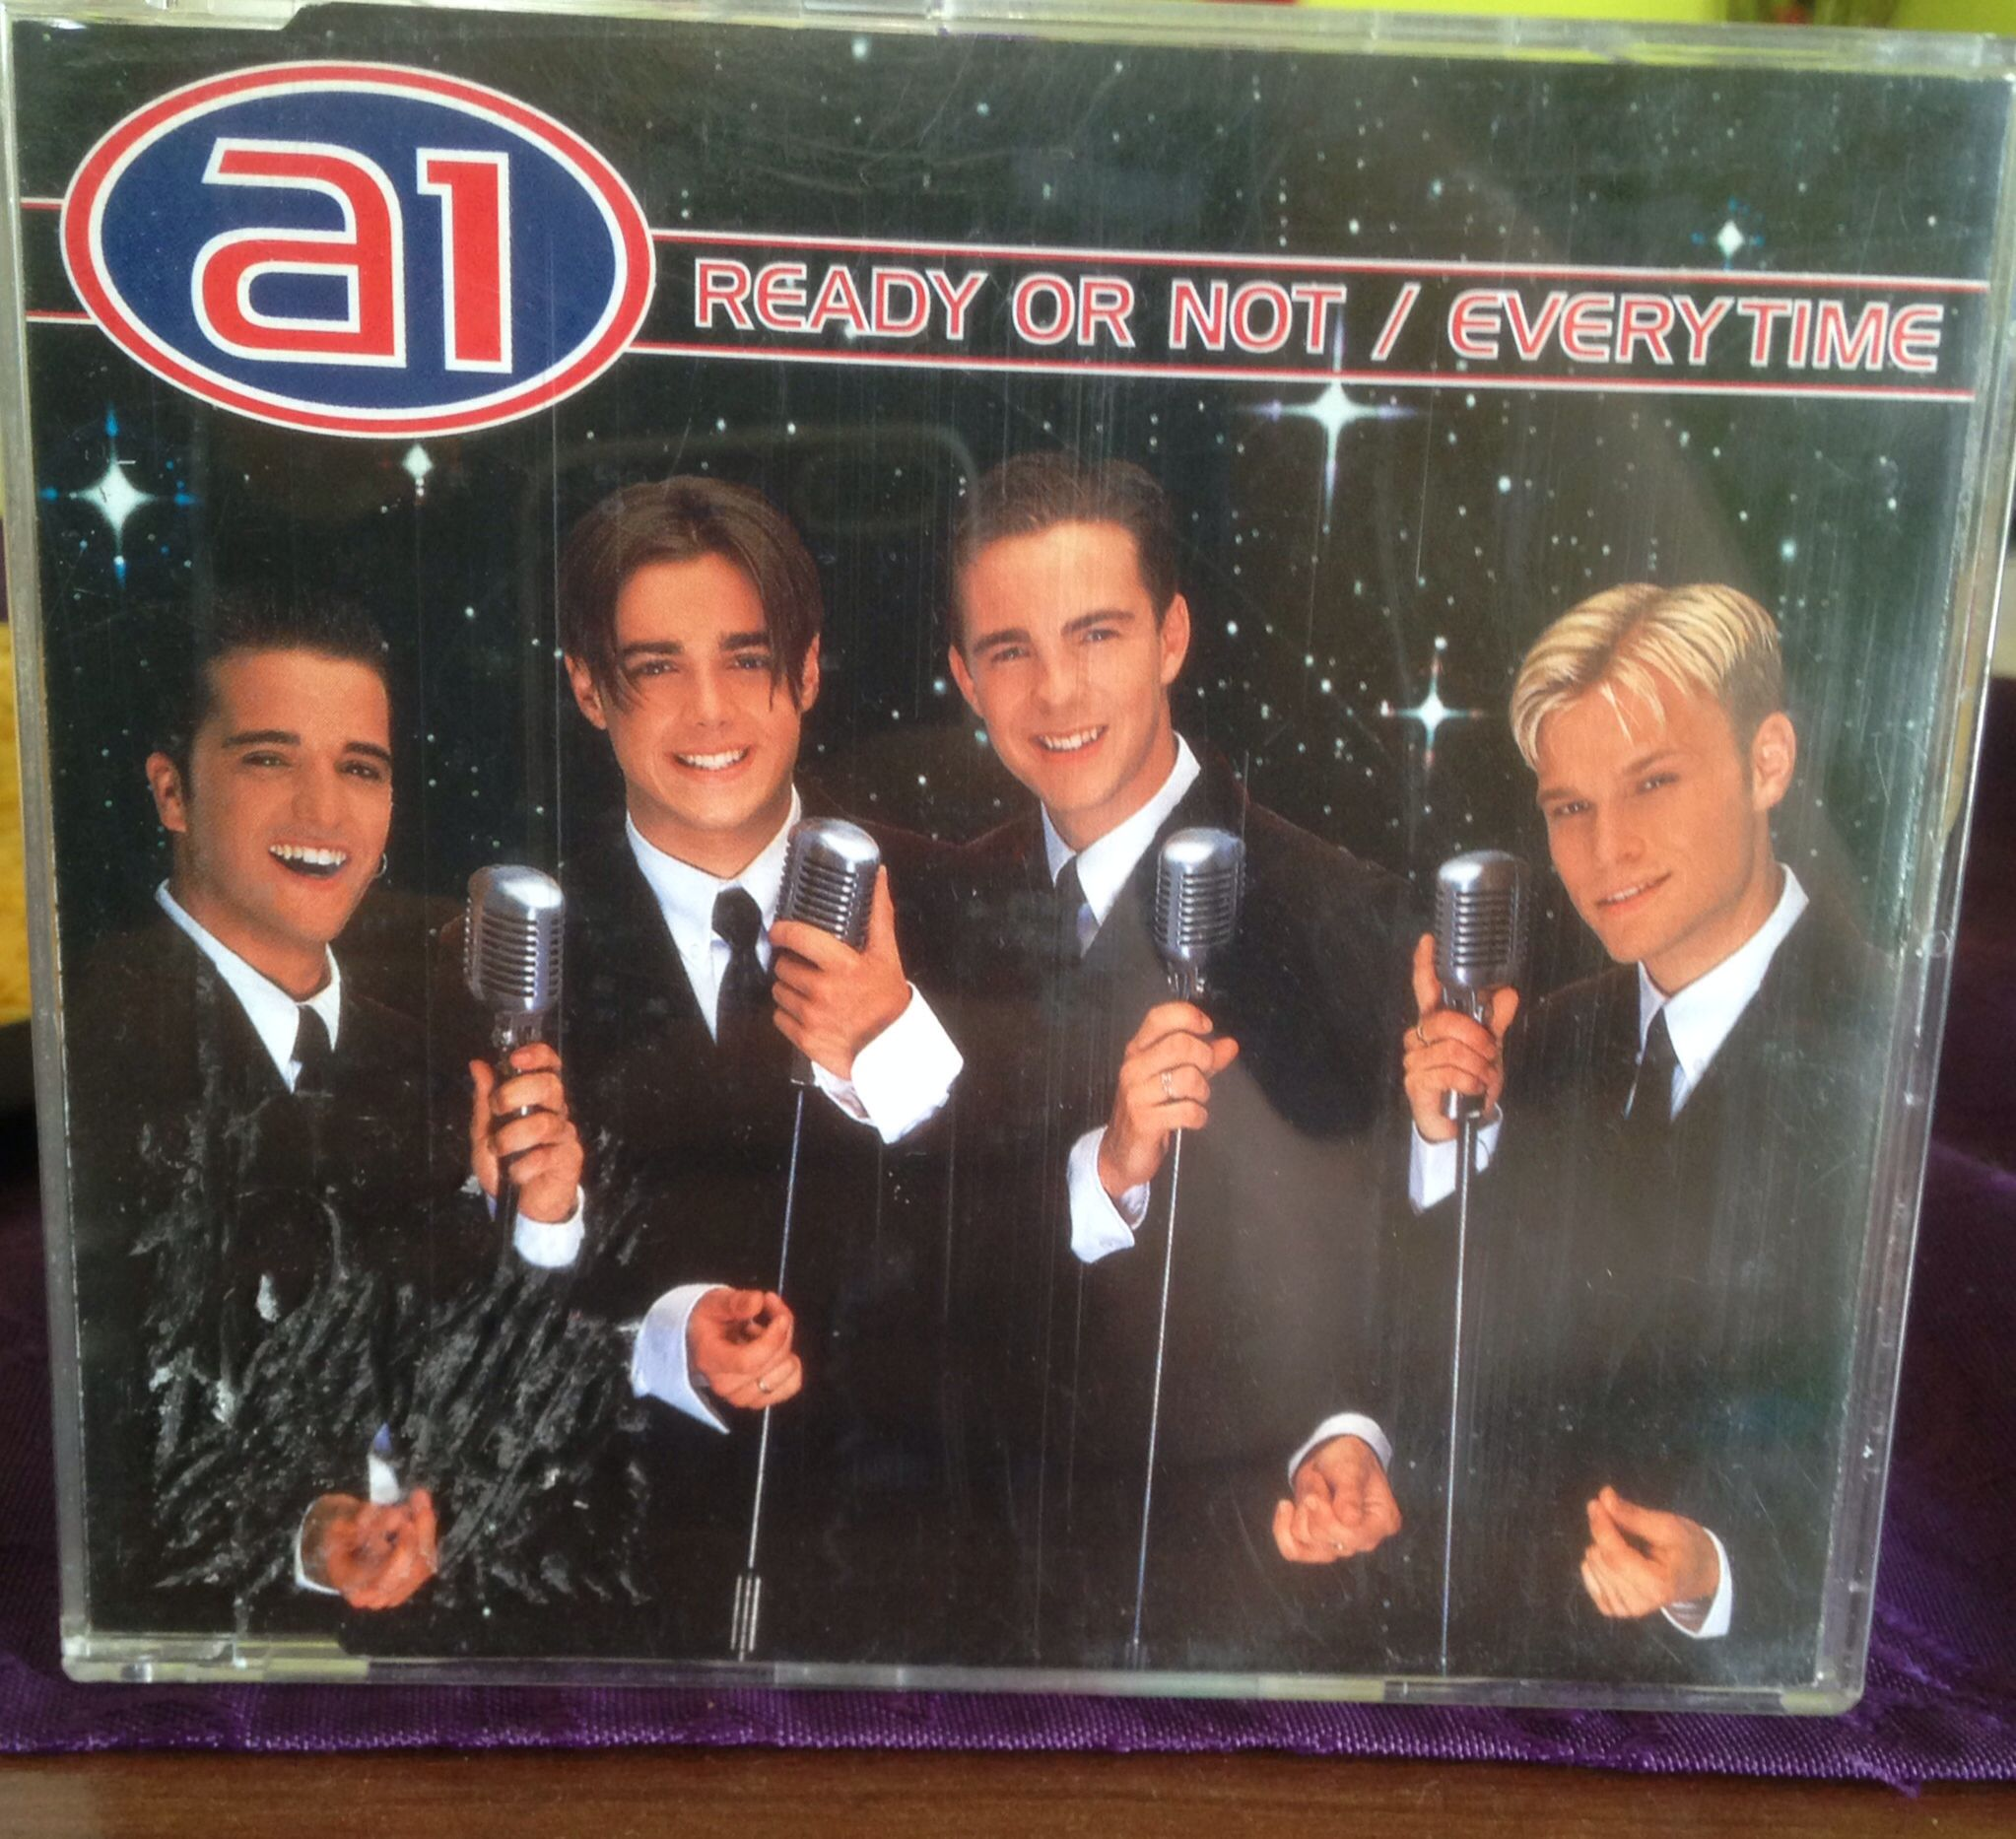 Ready or Not/Everytime A1 band, 80s icons, Baseball cards